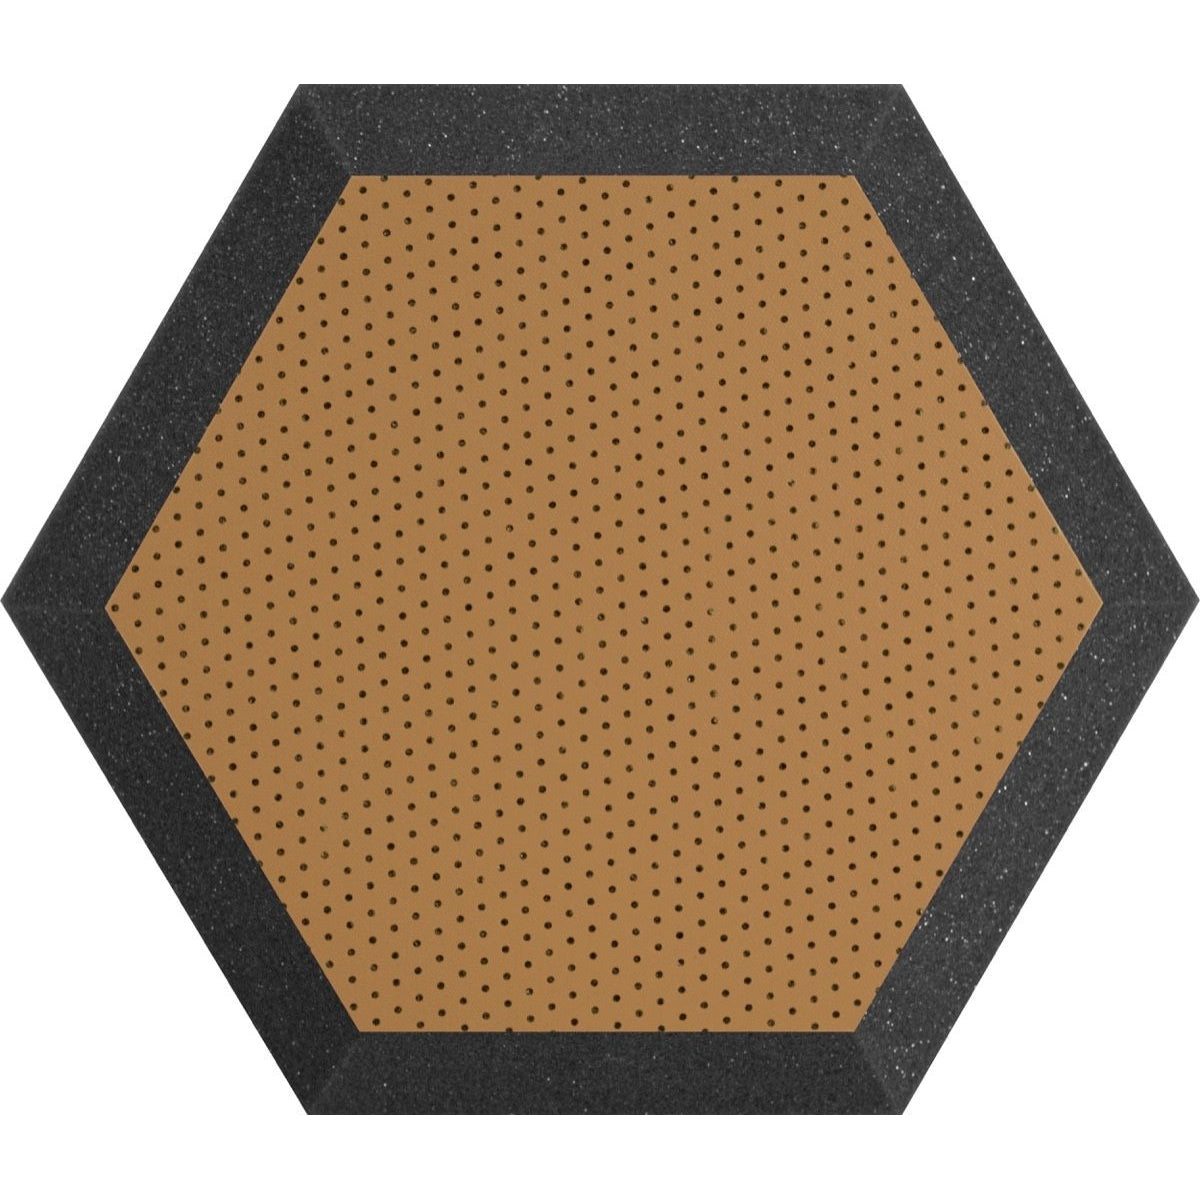 Ultimate Acoustics Hexagonal Foam Wall Panel (Pair), Bronze/Brown, UA-HX-12BR, 12 Inch